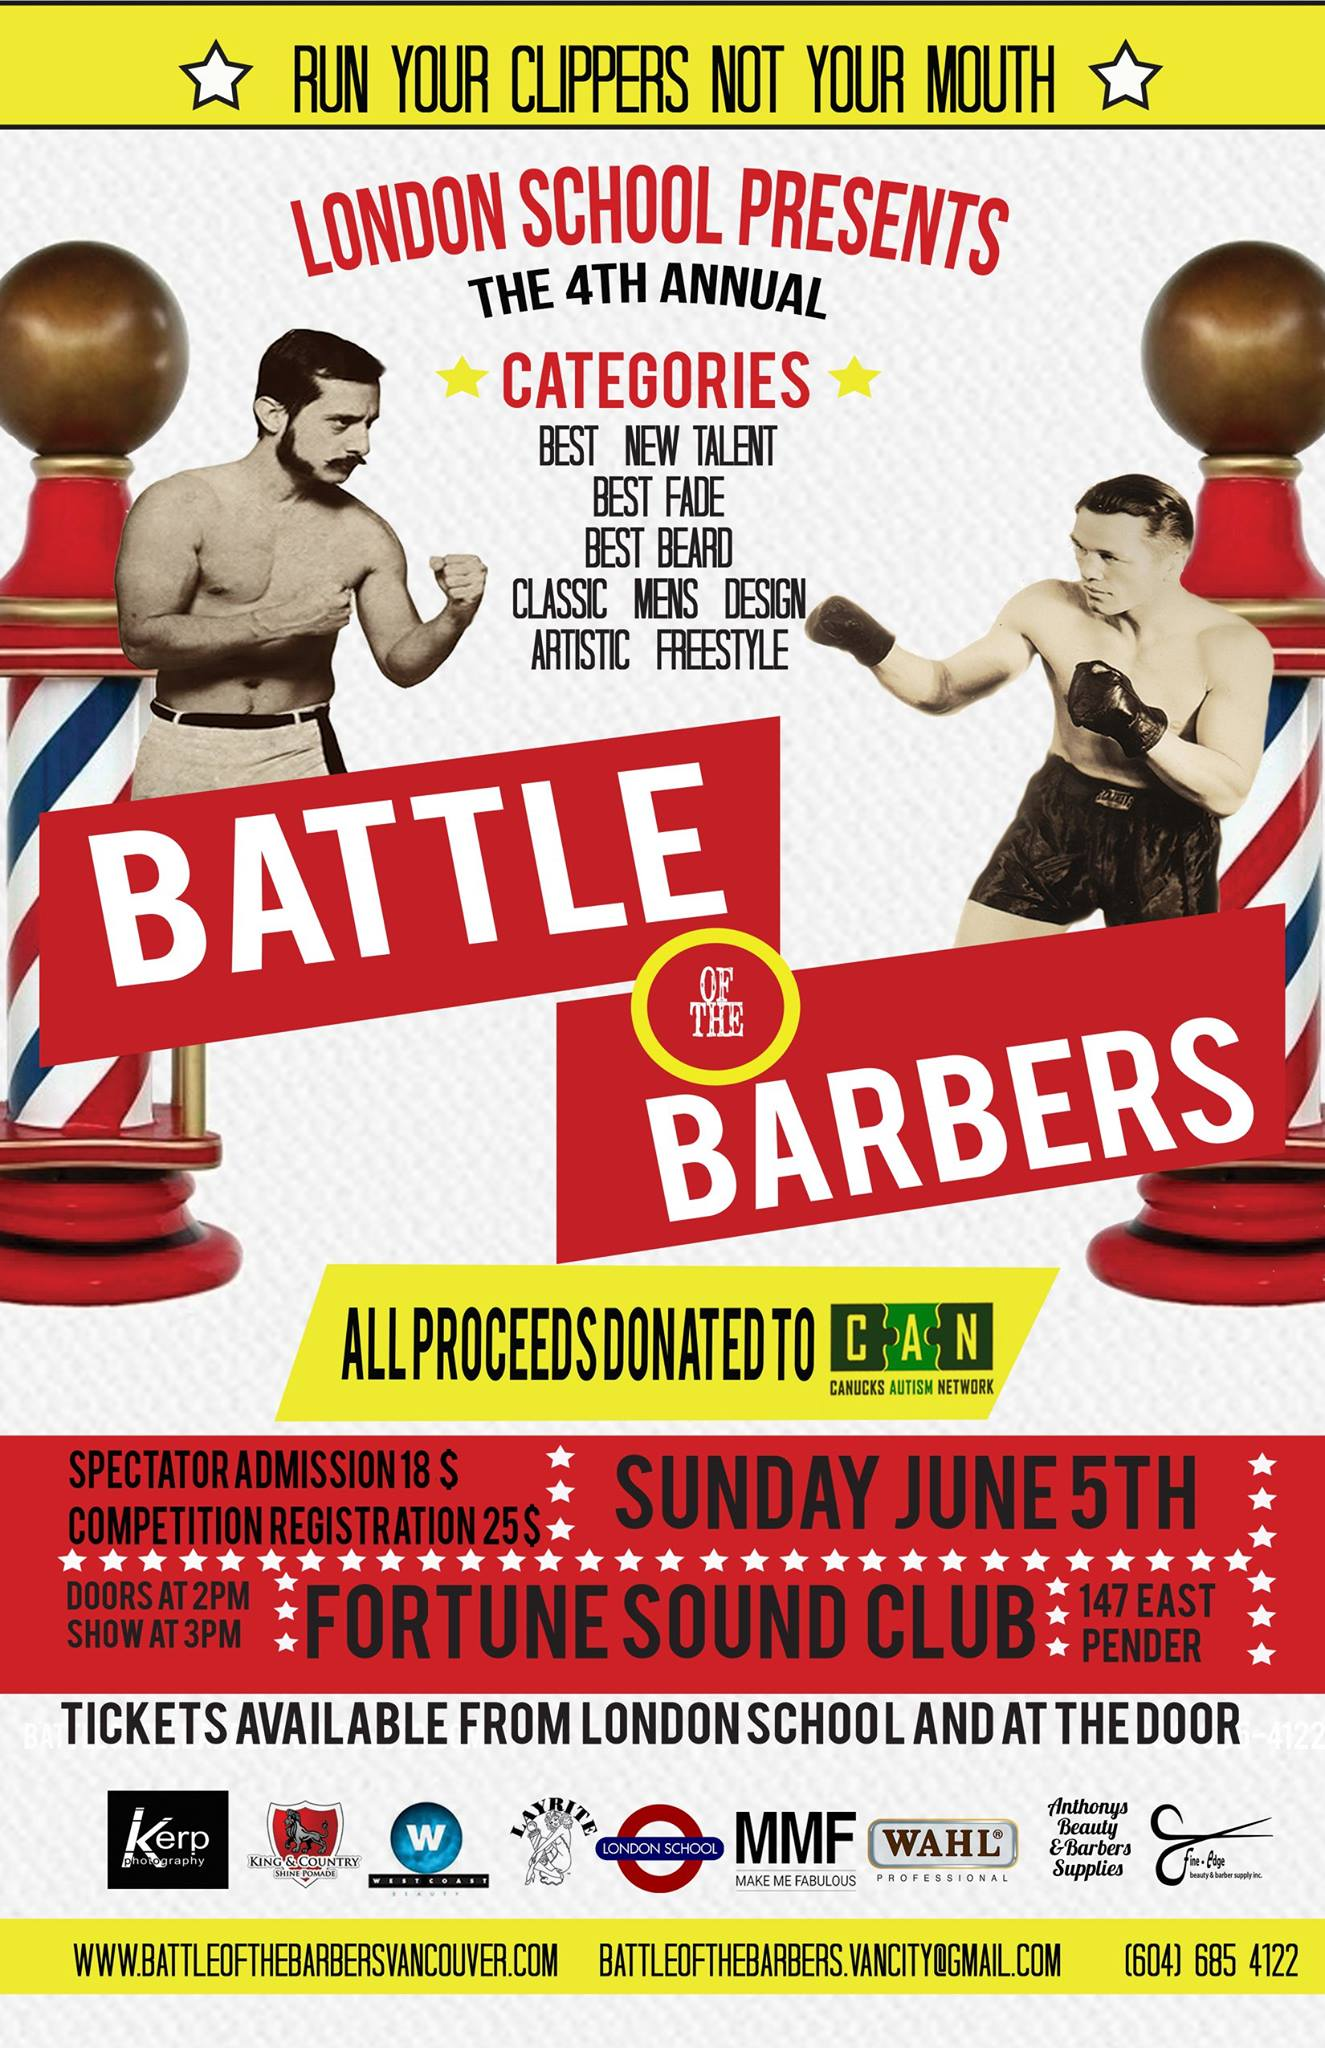 Come to Battle of the Barbers 2016! (London School/Facebook)